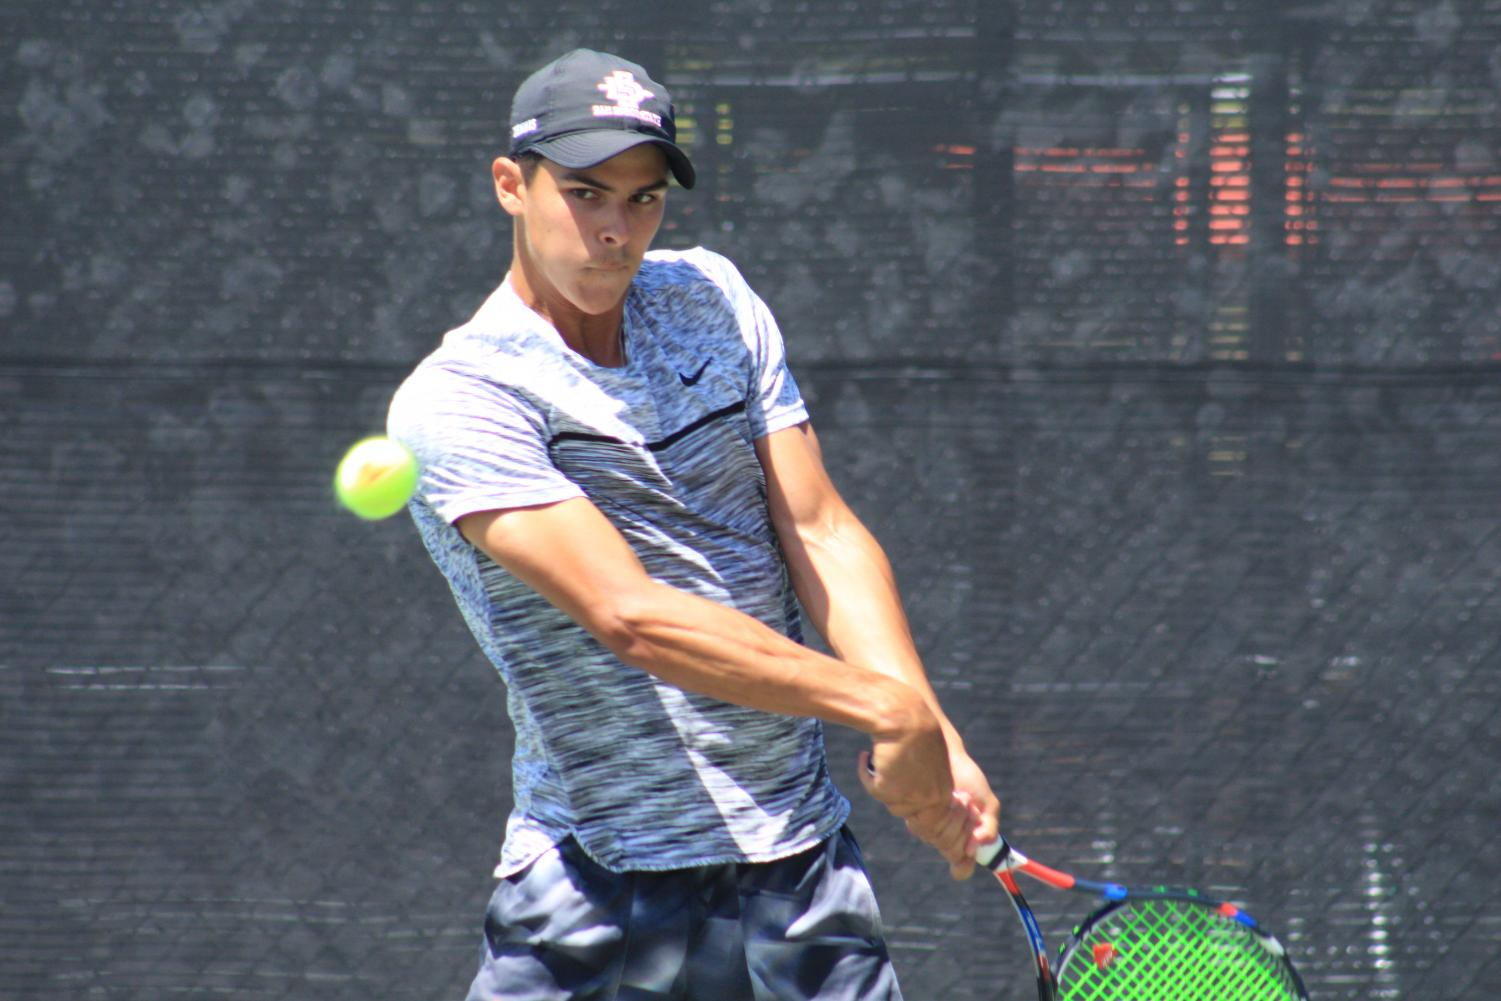 Freshman Ignacio Martinez readies to hit the ball during the Aztecs 4-0 victory over Air Force at the Aztec Tennis Center on April 8.